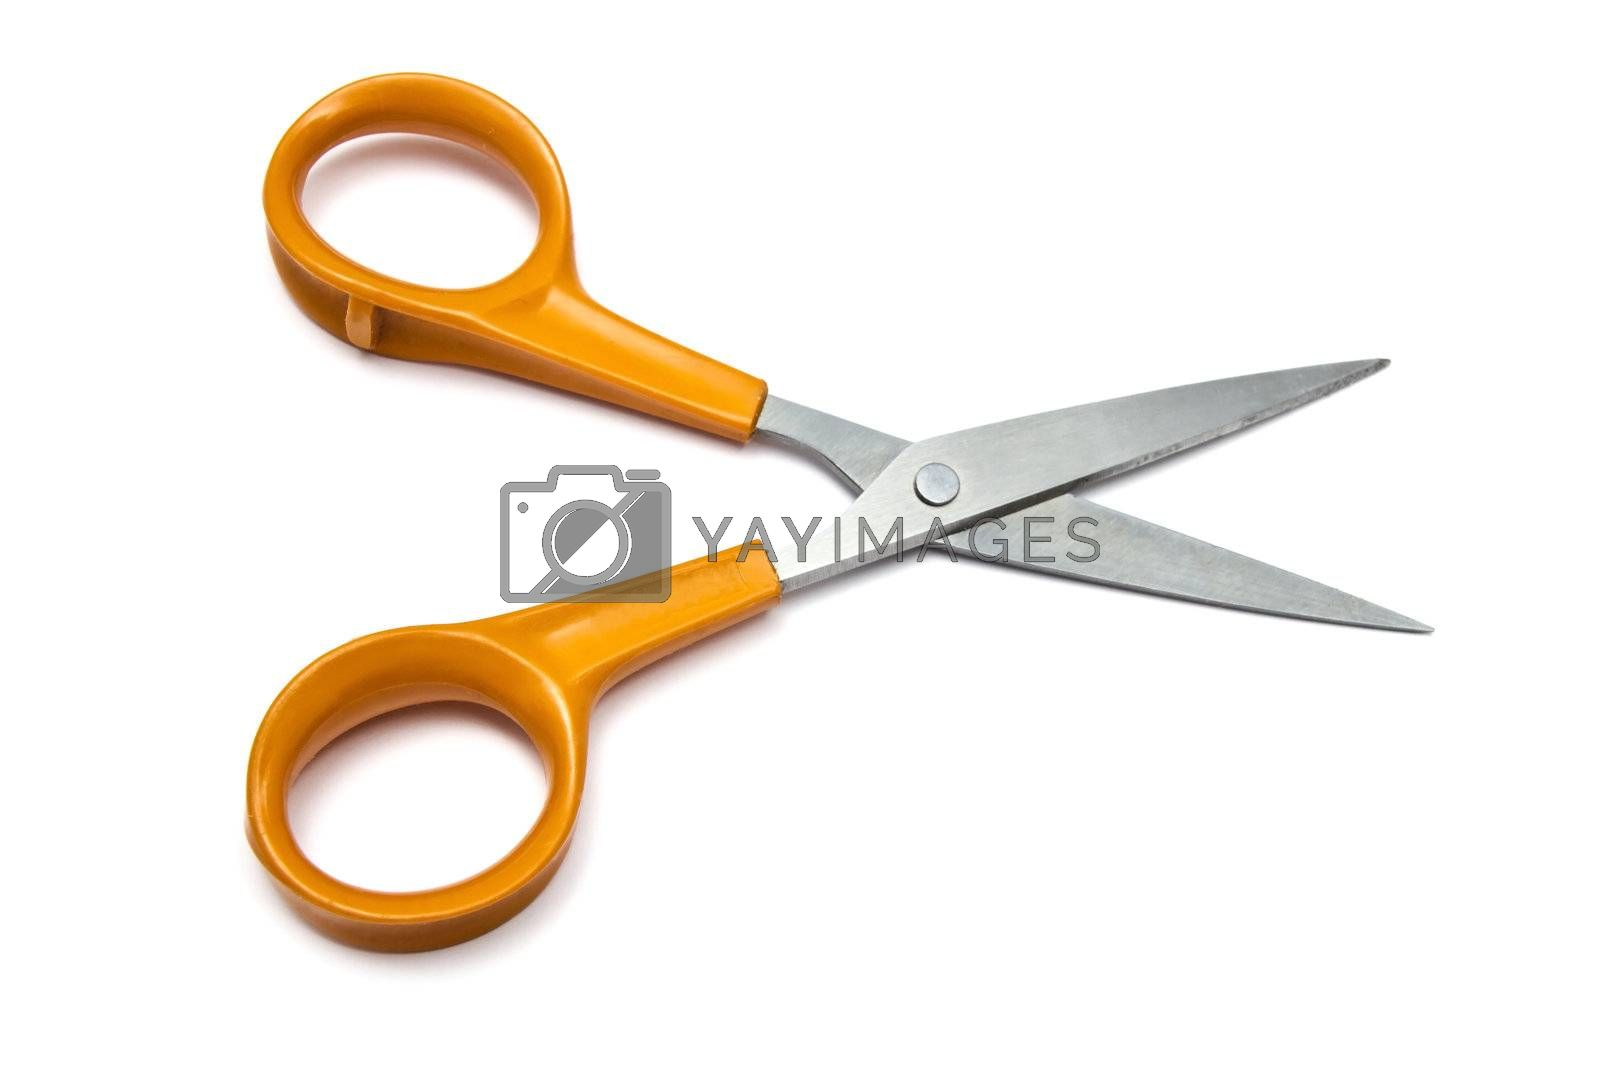 Handled scissors  by ibphoto